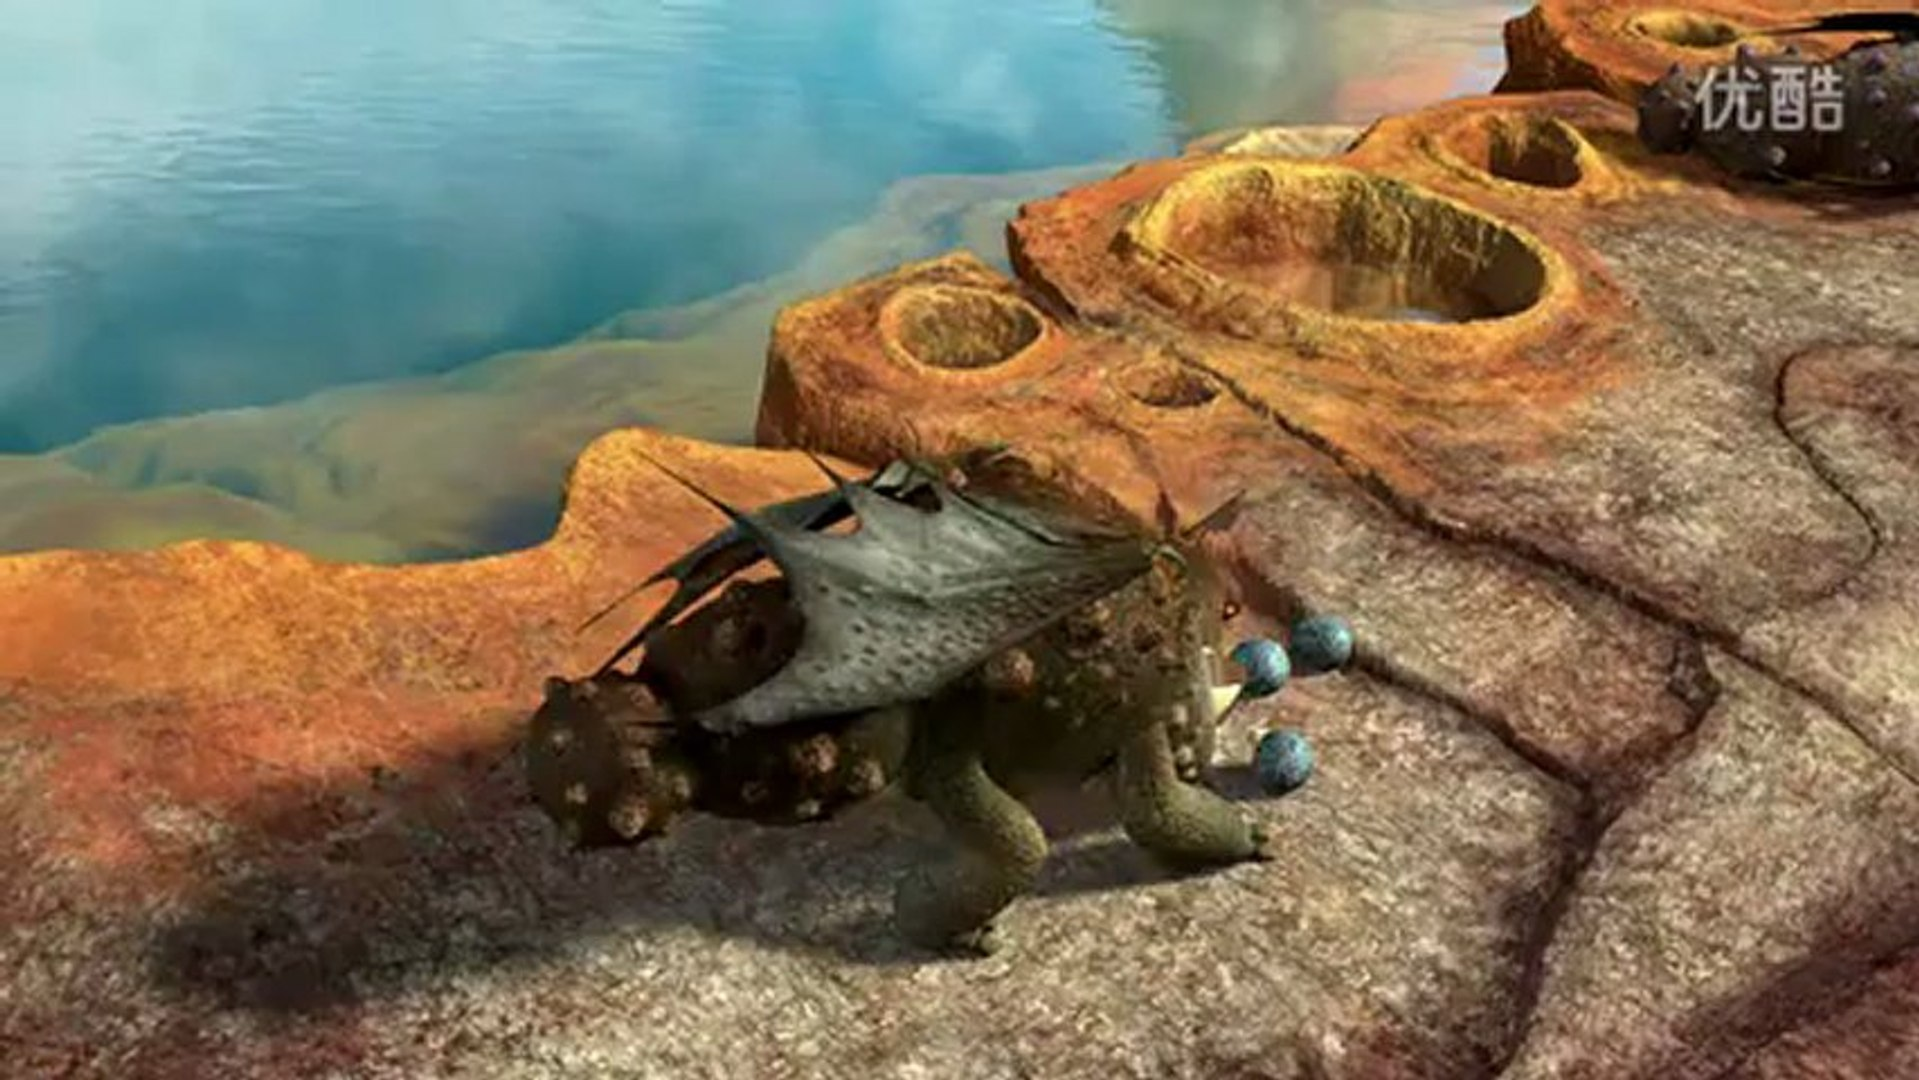 22+ Download How To Train Your Dragon 3 Subtitle Indonesia Pictures